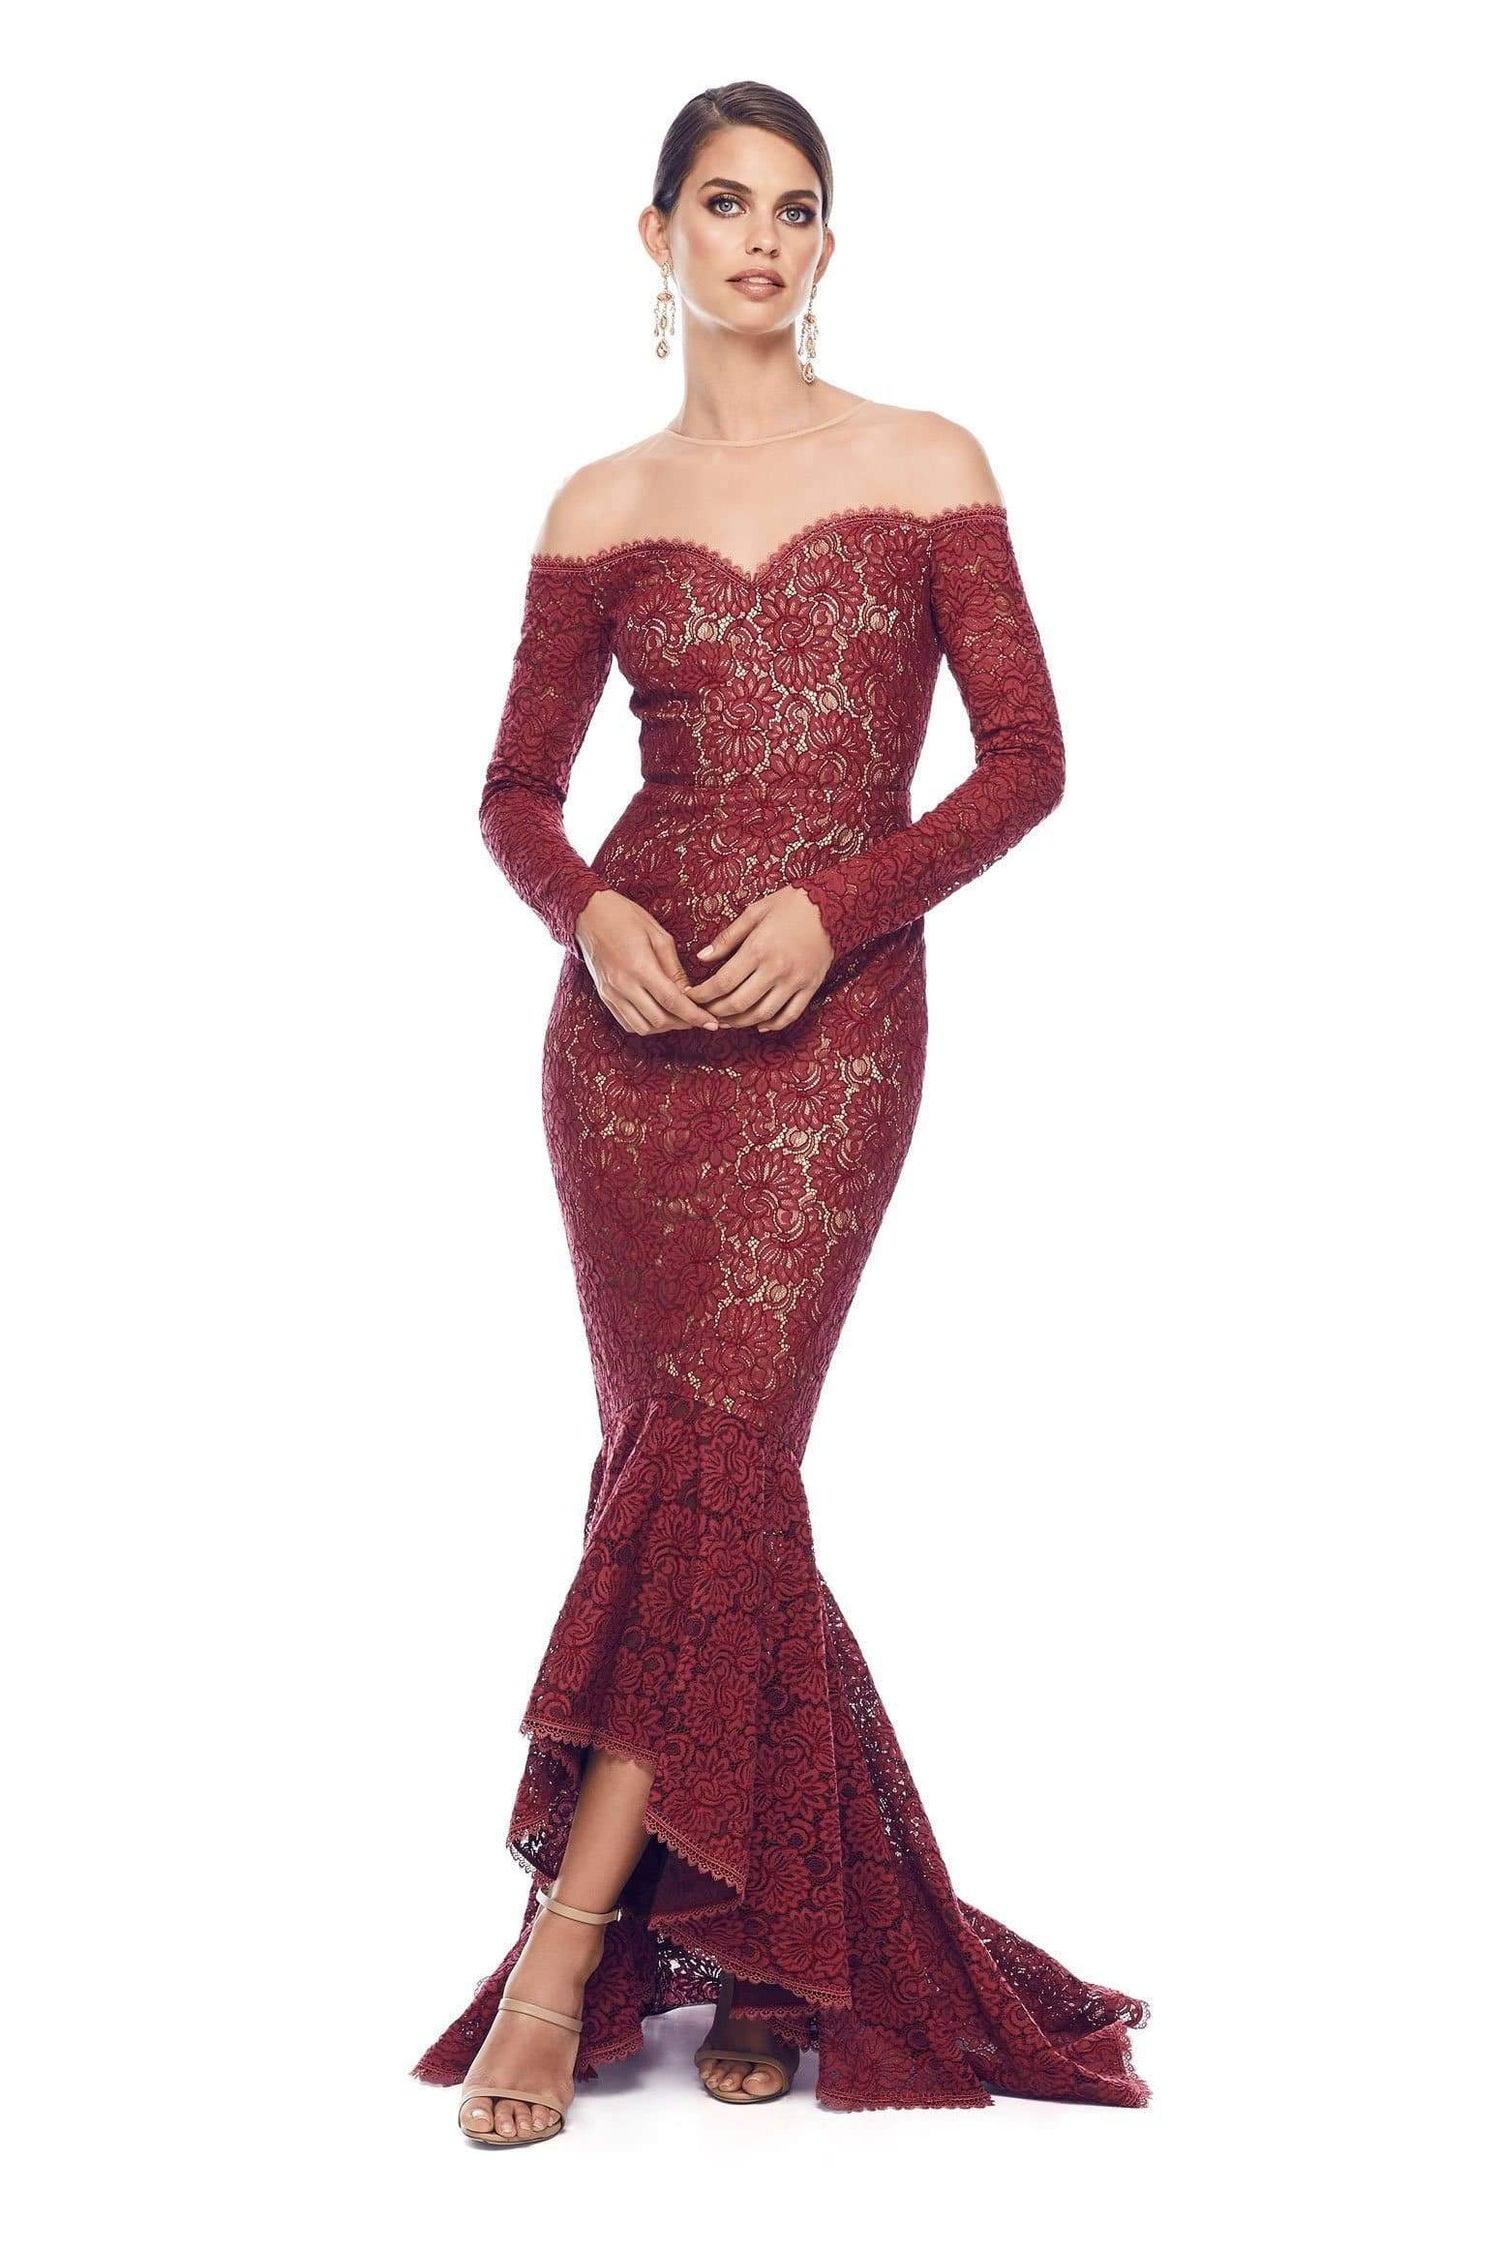 Margarita Lace Gown -  Burgundy